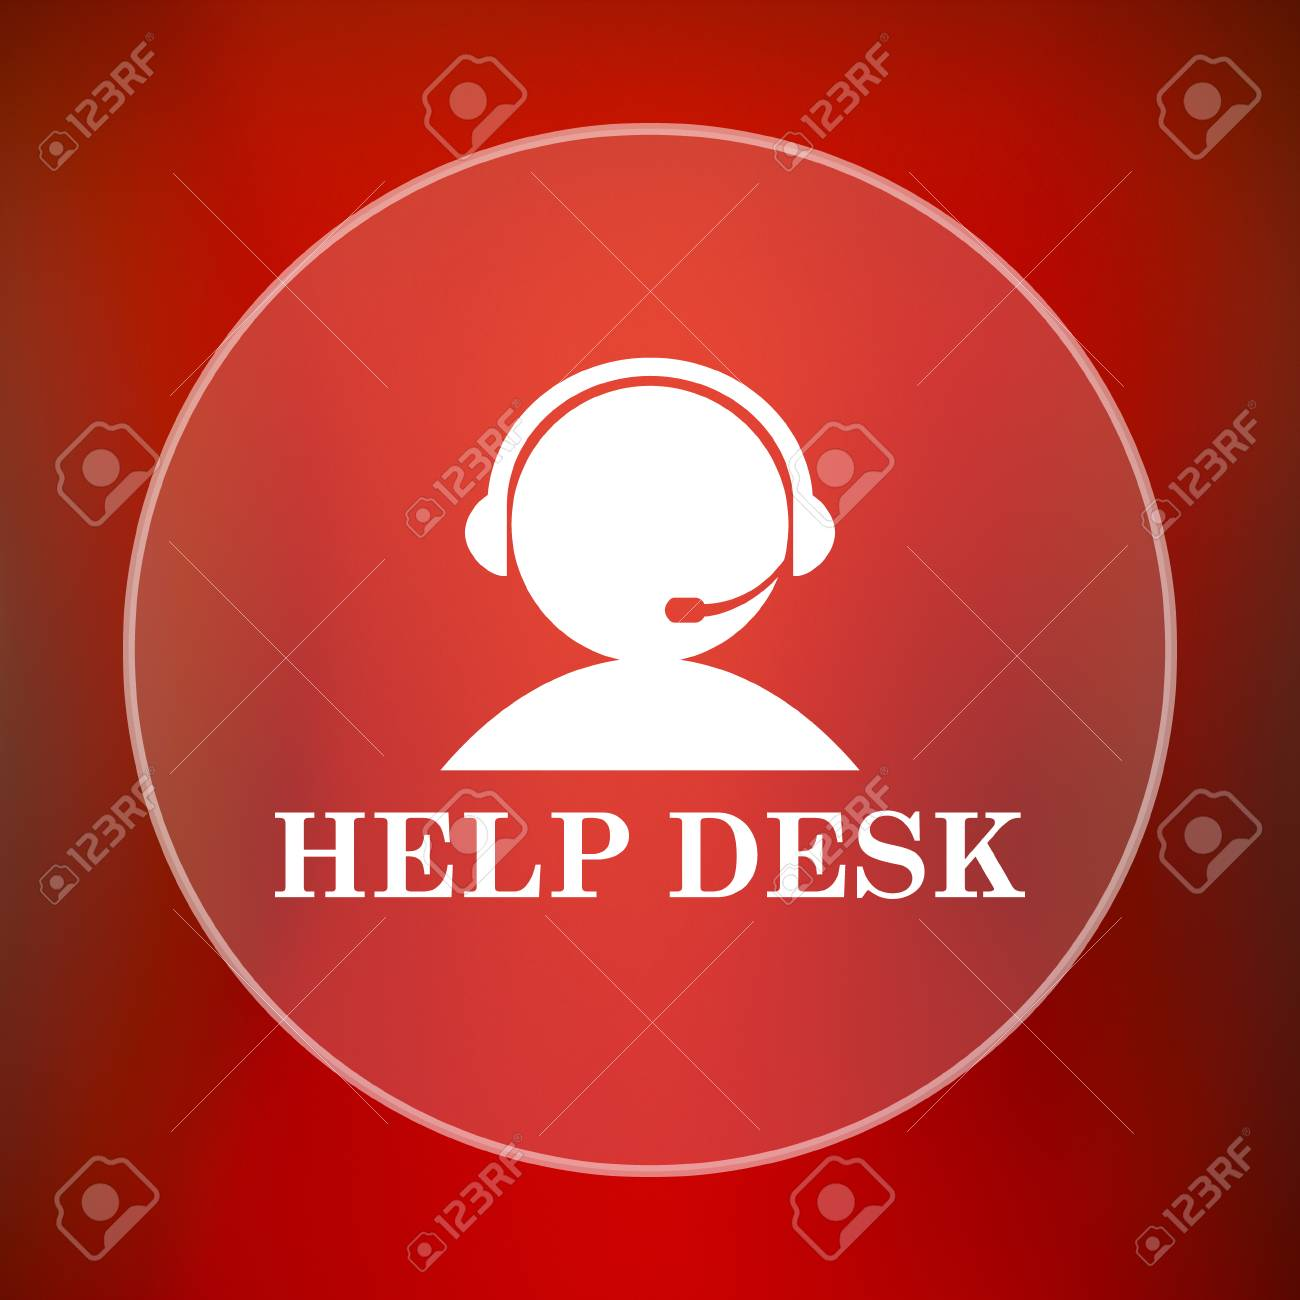 Helpdesk Icon. Internet Button On Red Background. Stock Photo   55164947 Good Looking